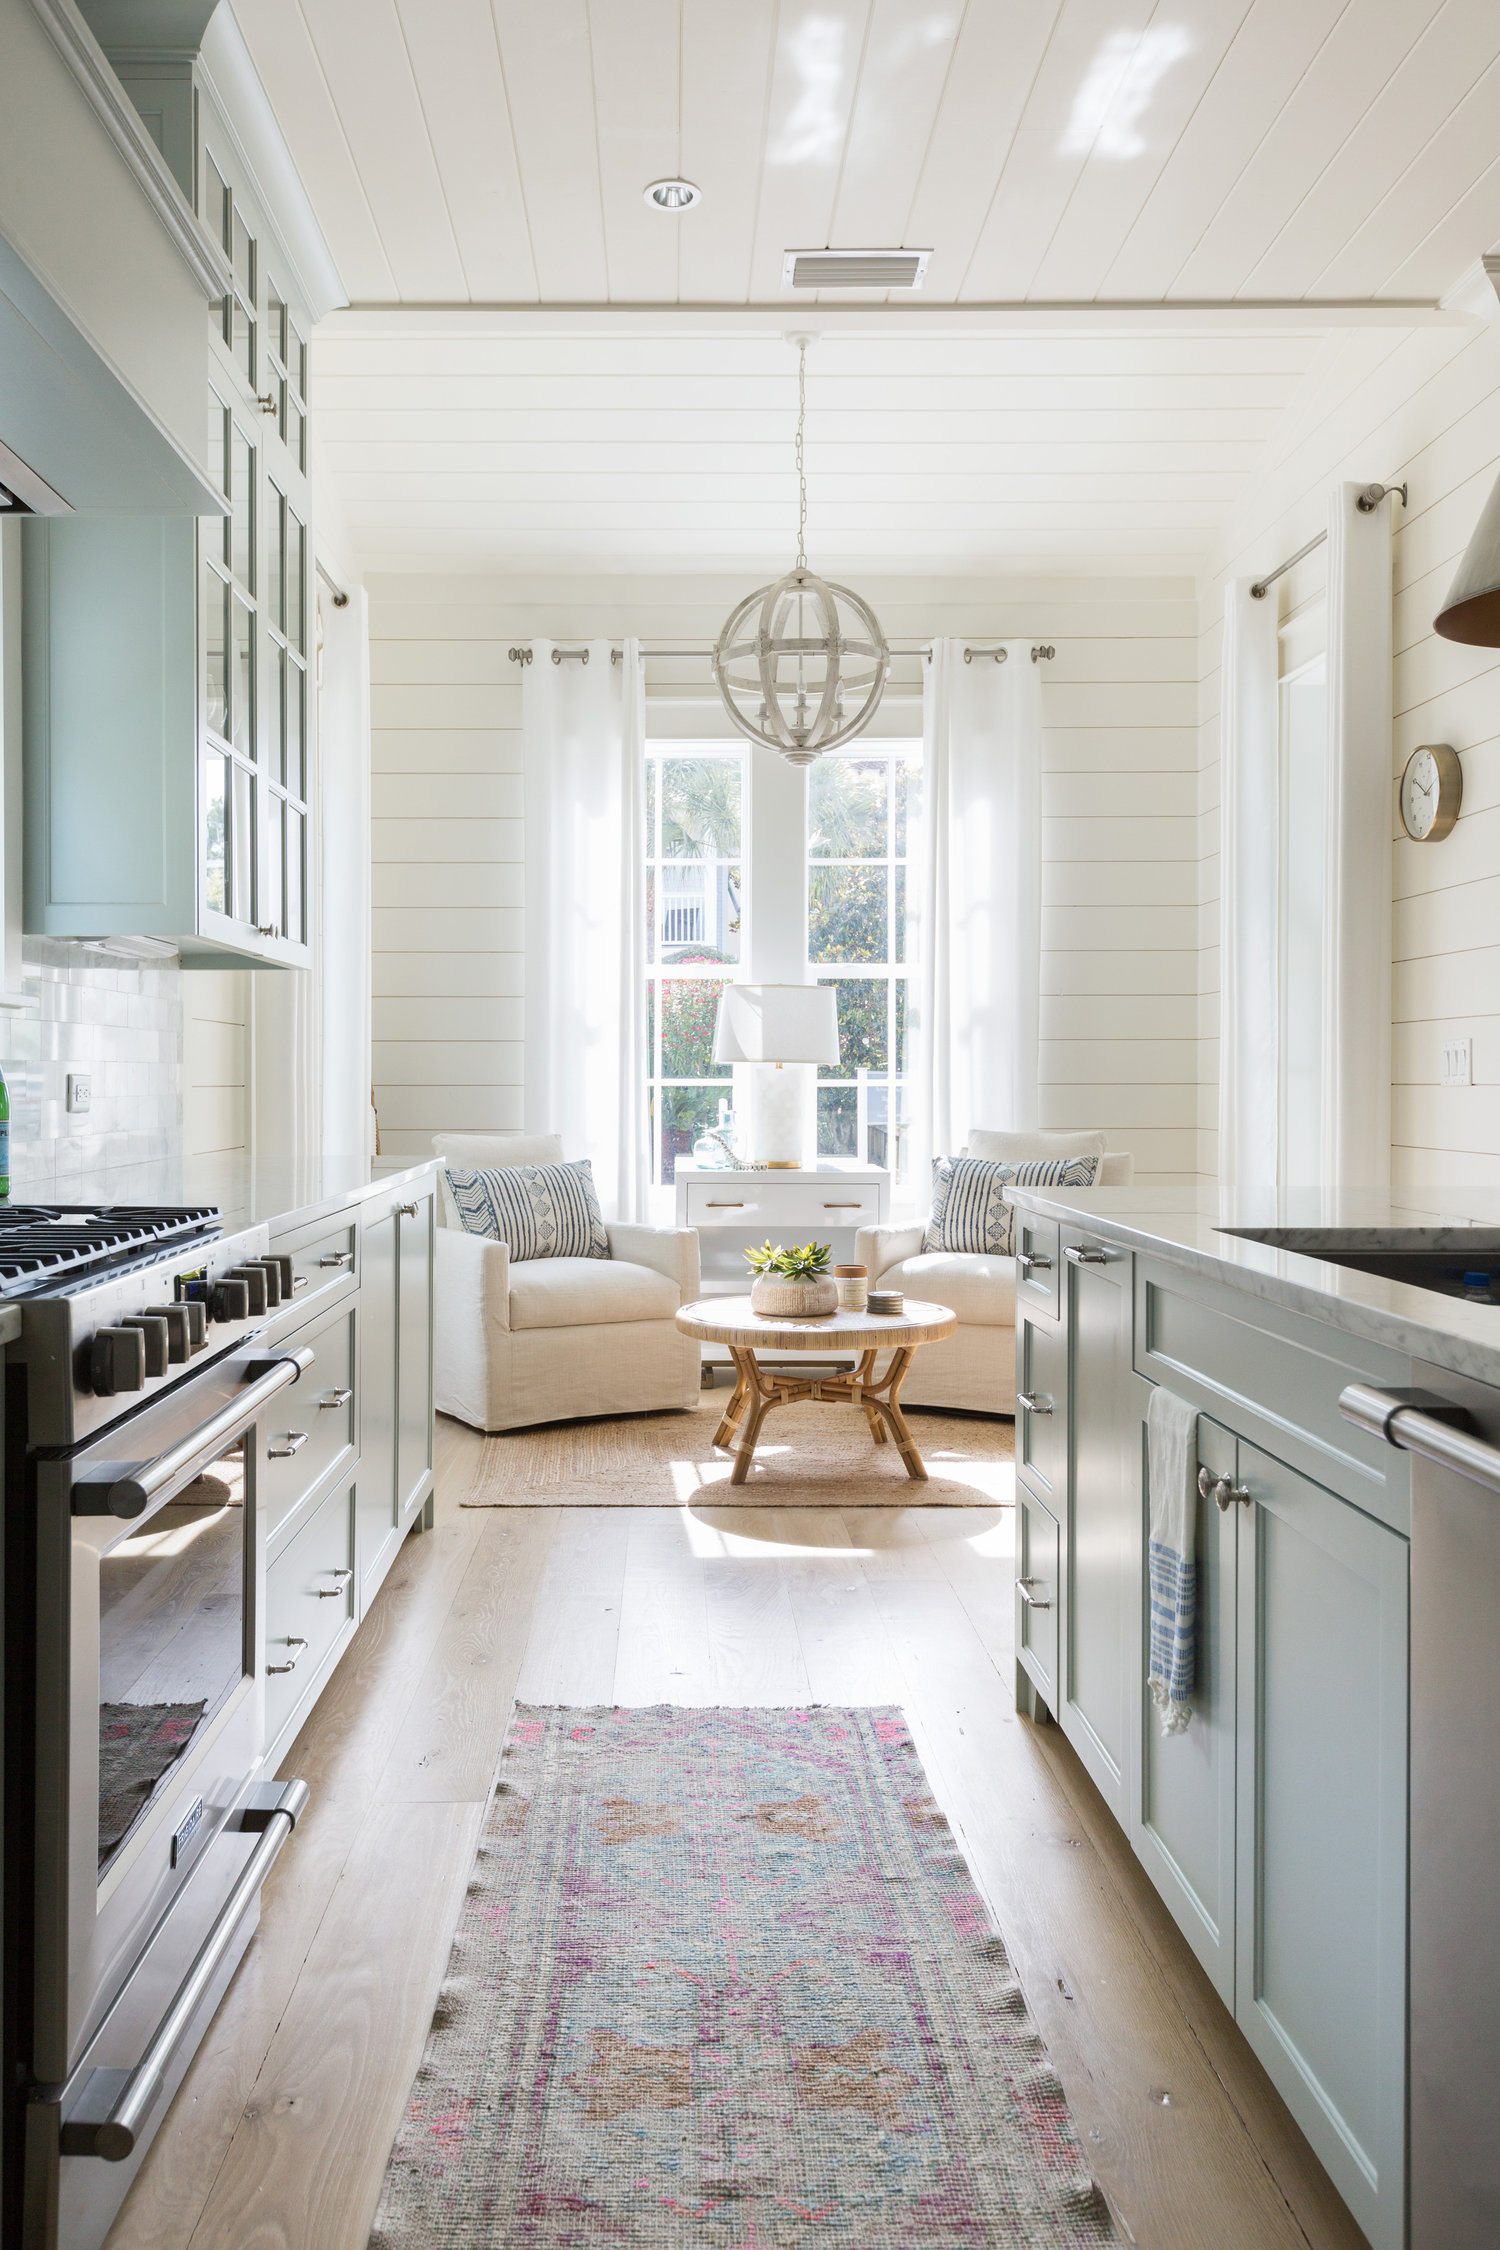 Beautiful kitchen with a cozy little reading nook kellyelko.com #kitchens #kitchendecor #interiors #decorate